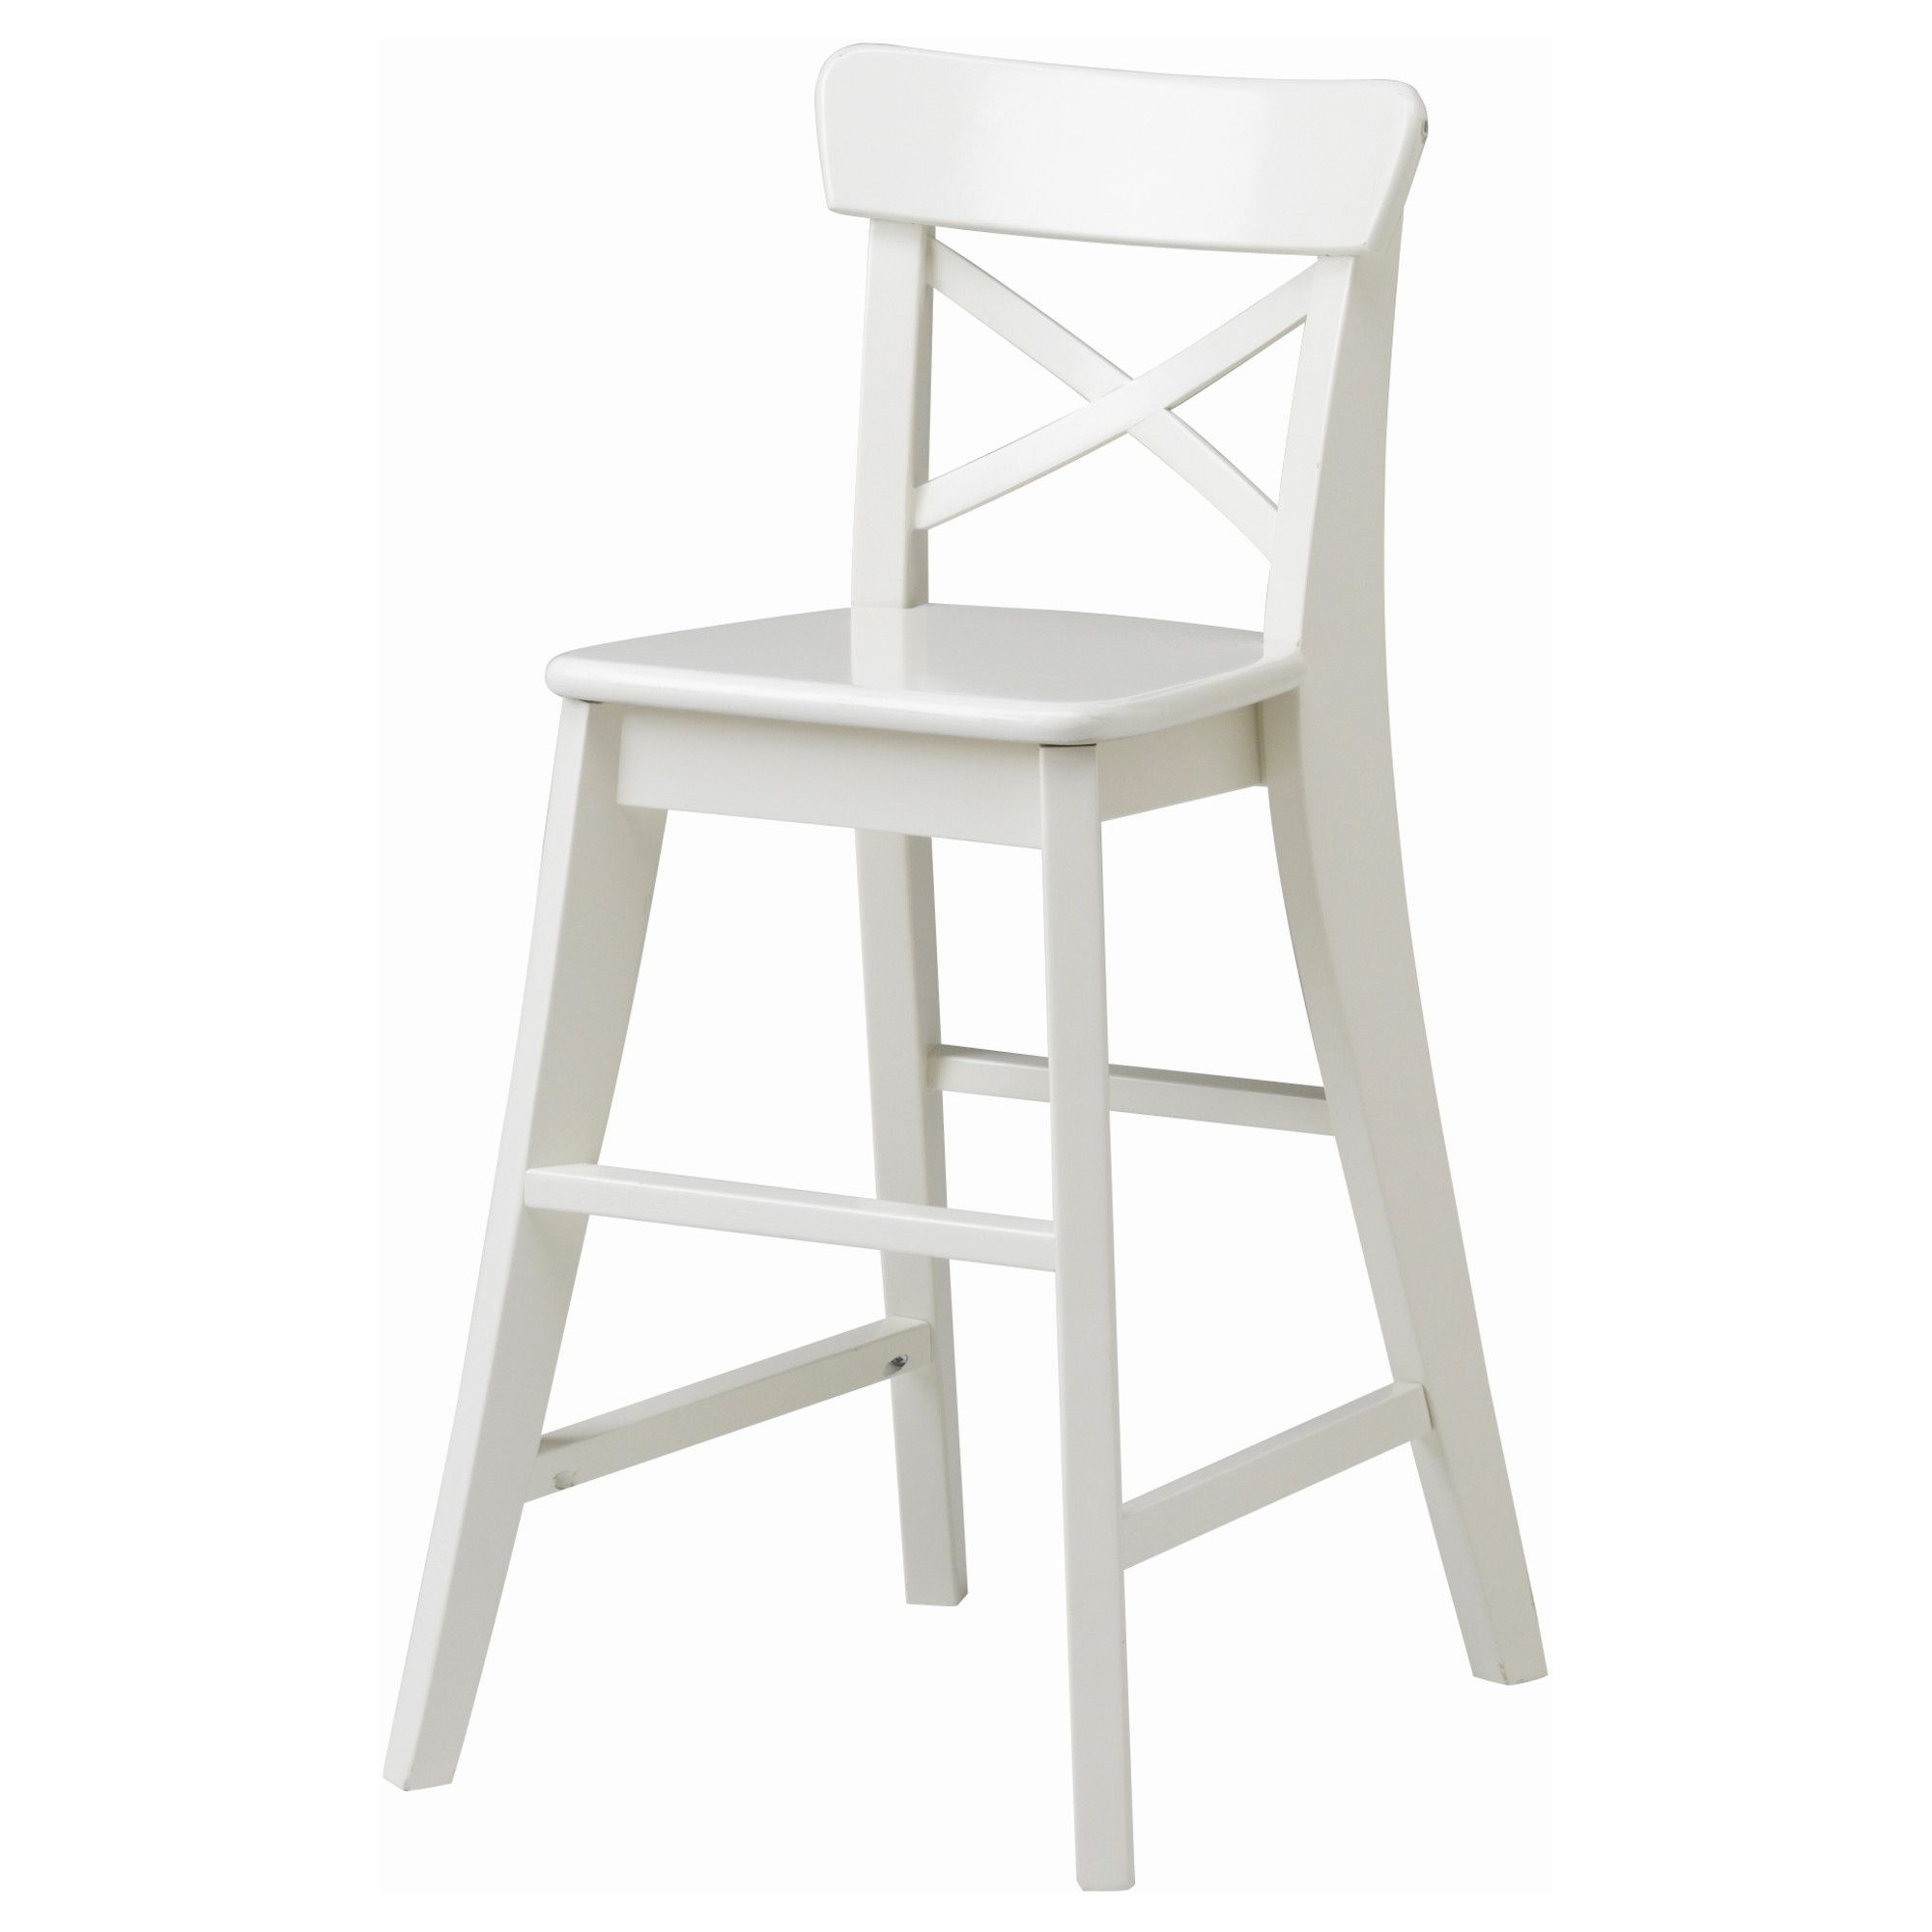 IKEA INGOLF junior chair Gives the right seat height for the child at the dining table.